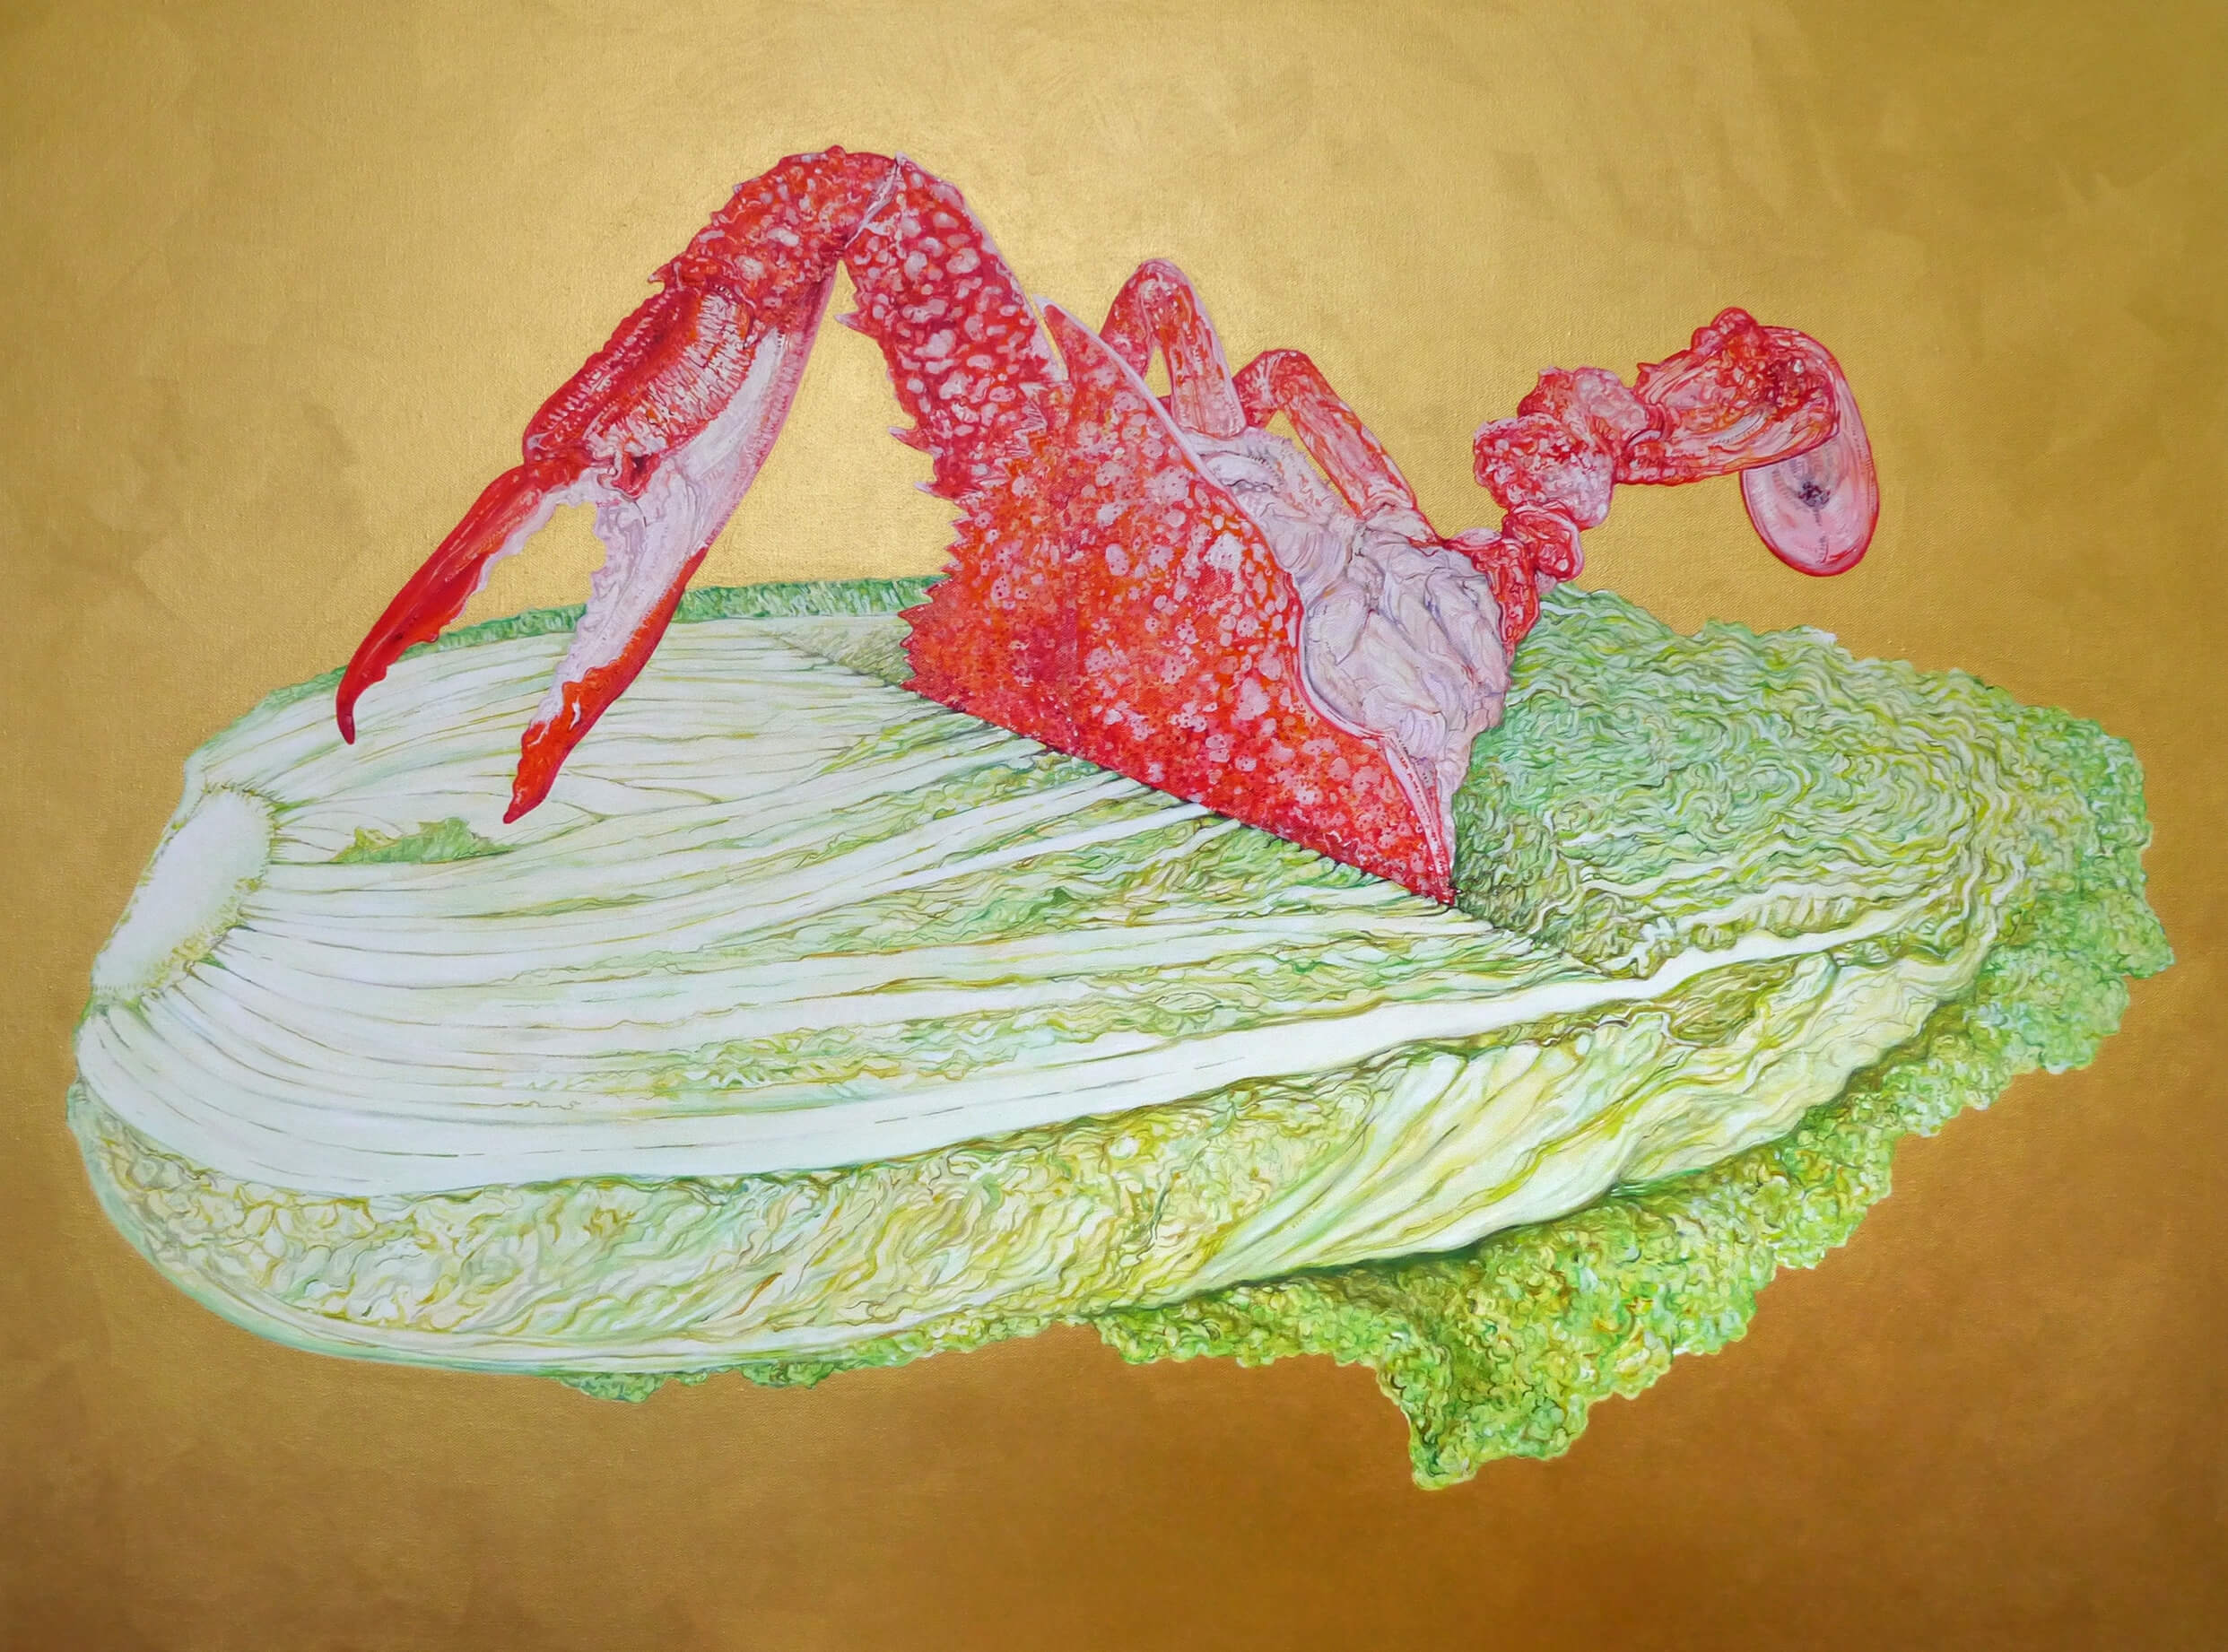 Non-GMO(Chinese Cabbage and Crab)